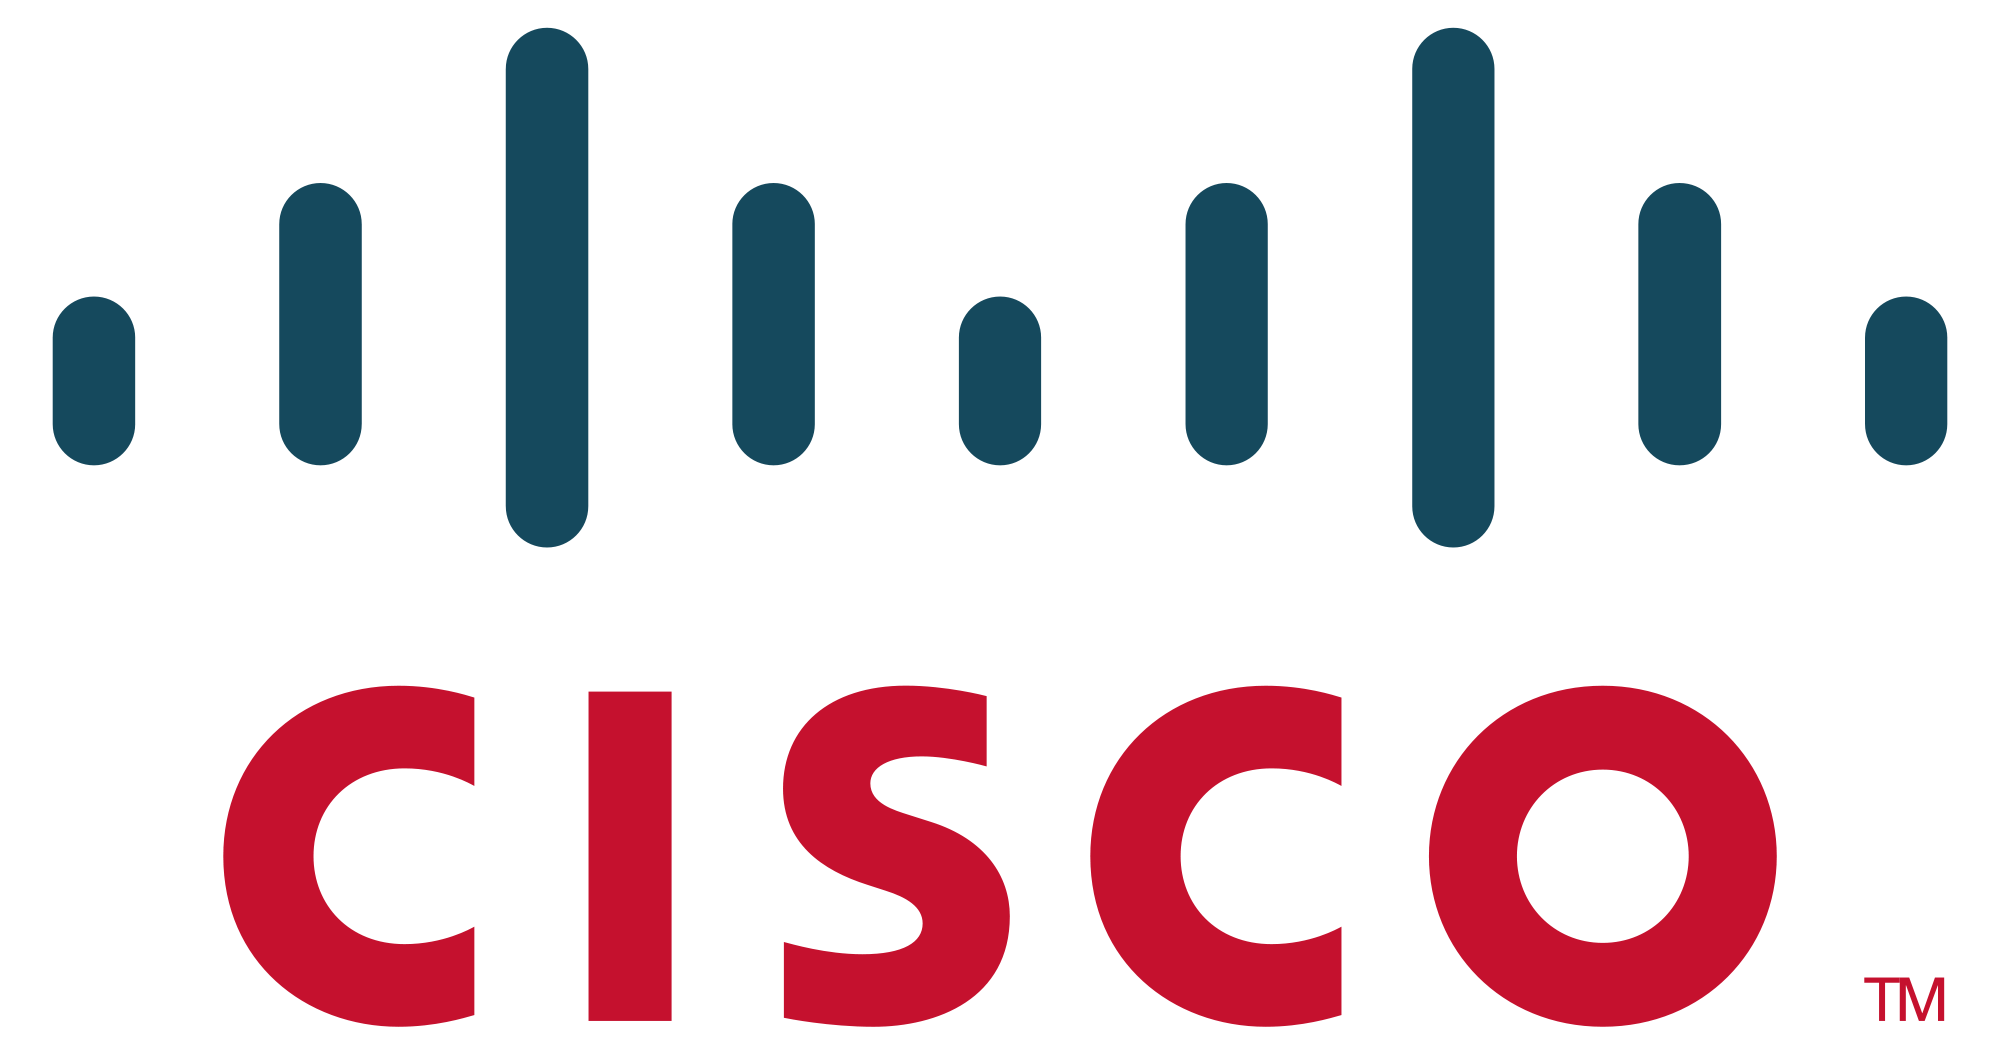 Cisco Products & Services | Cisco TelePresence Management